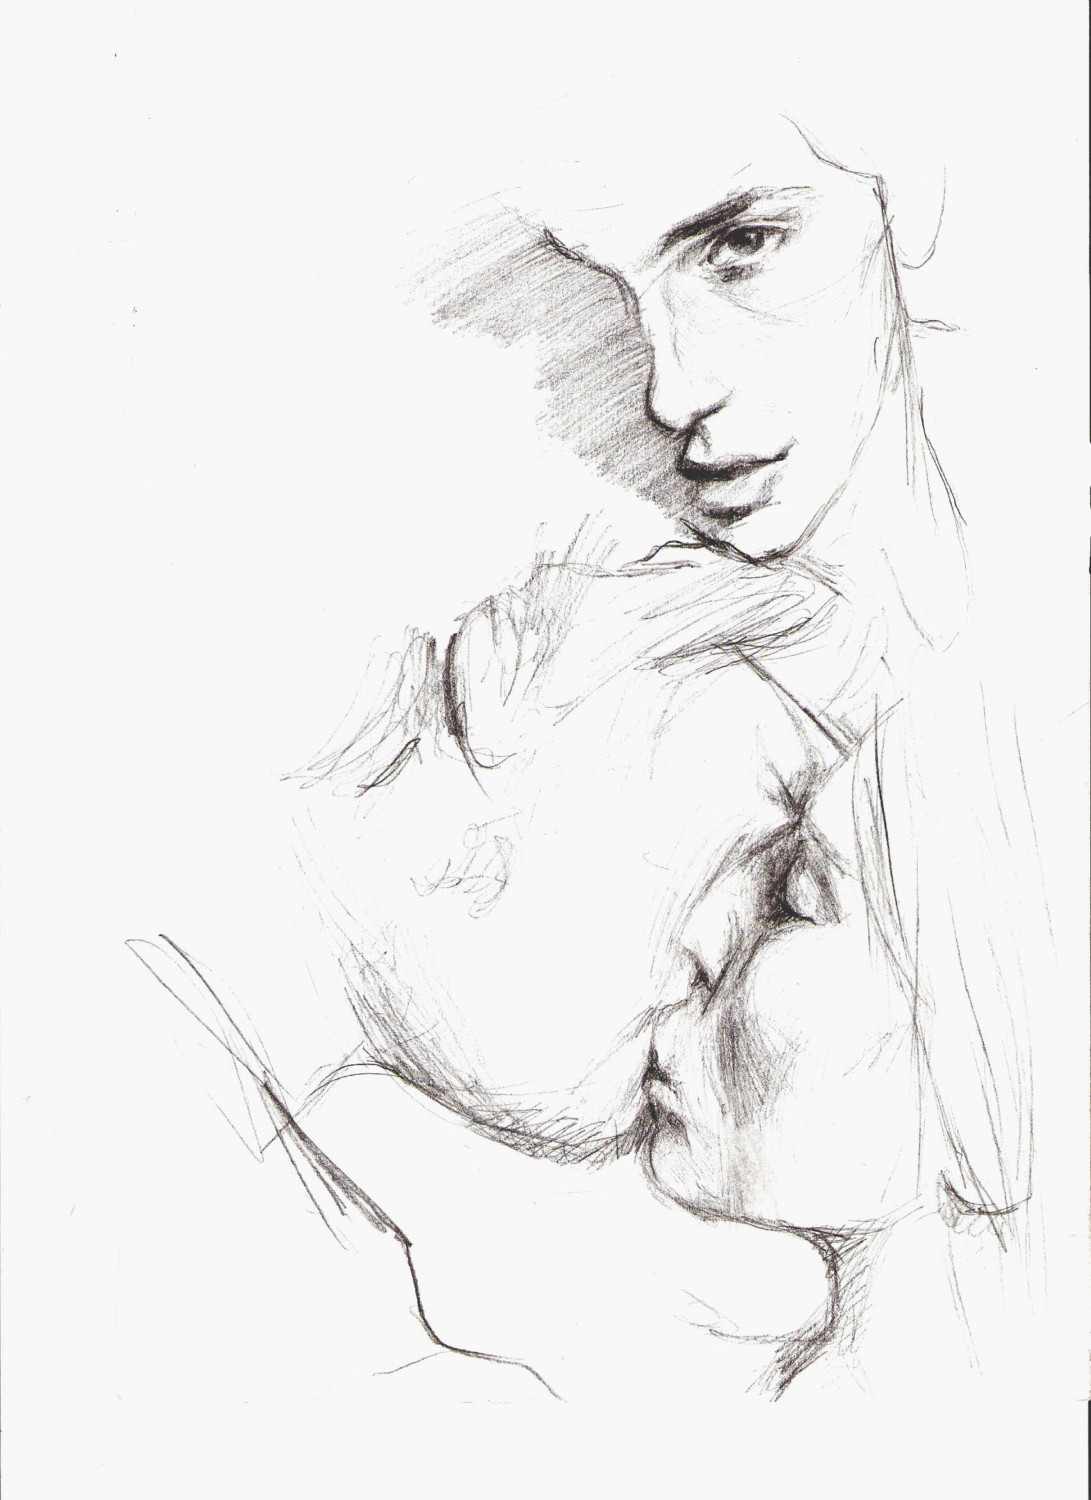 Pencil Drawings of People Holding Hands Drawings of co Holding Hand